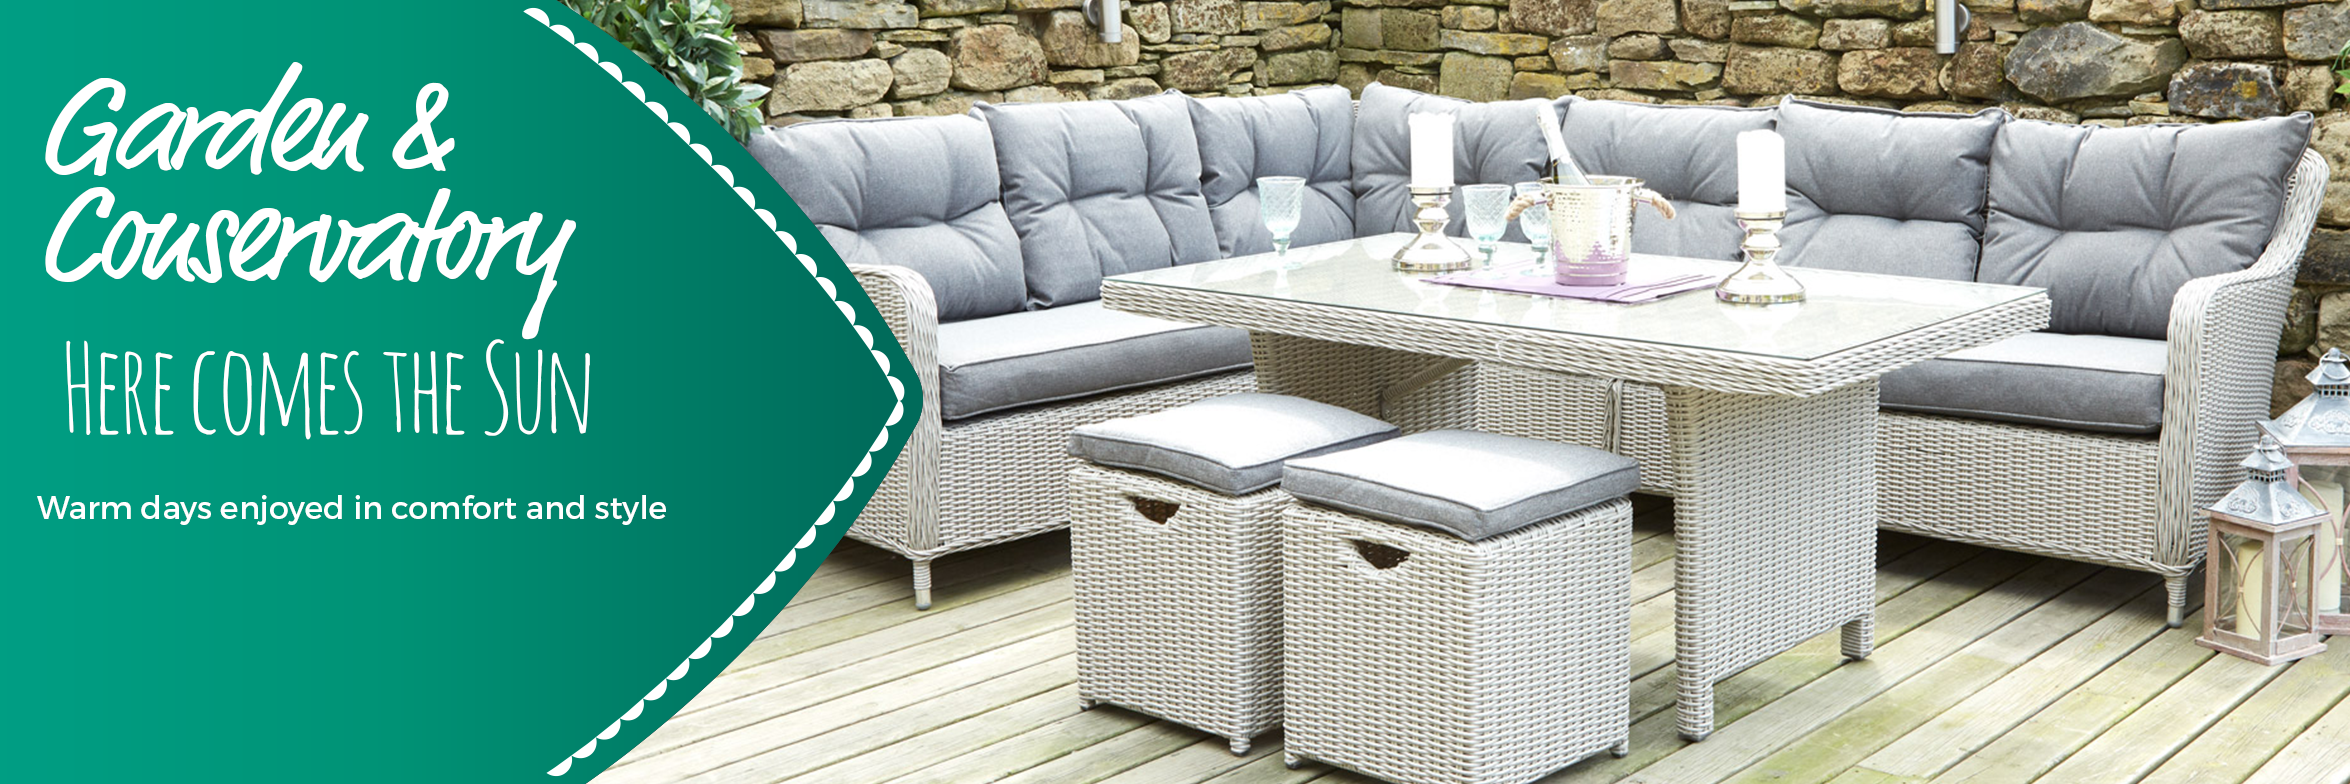 Garden Furniture Rattan Conservatory Patio From Harley Lola